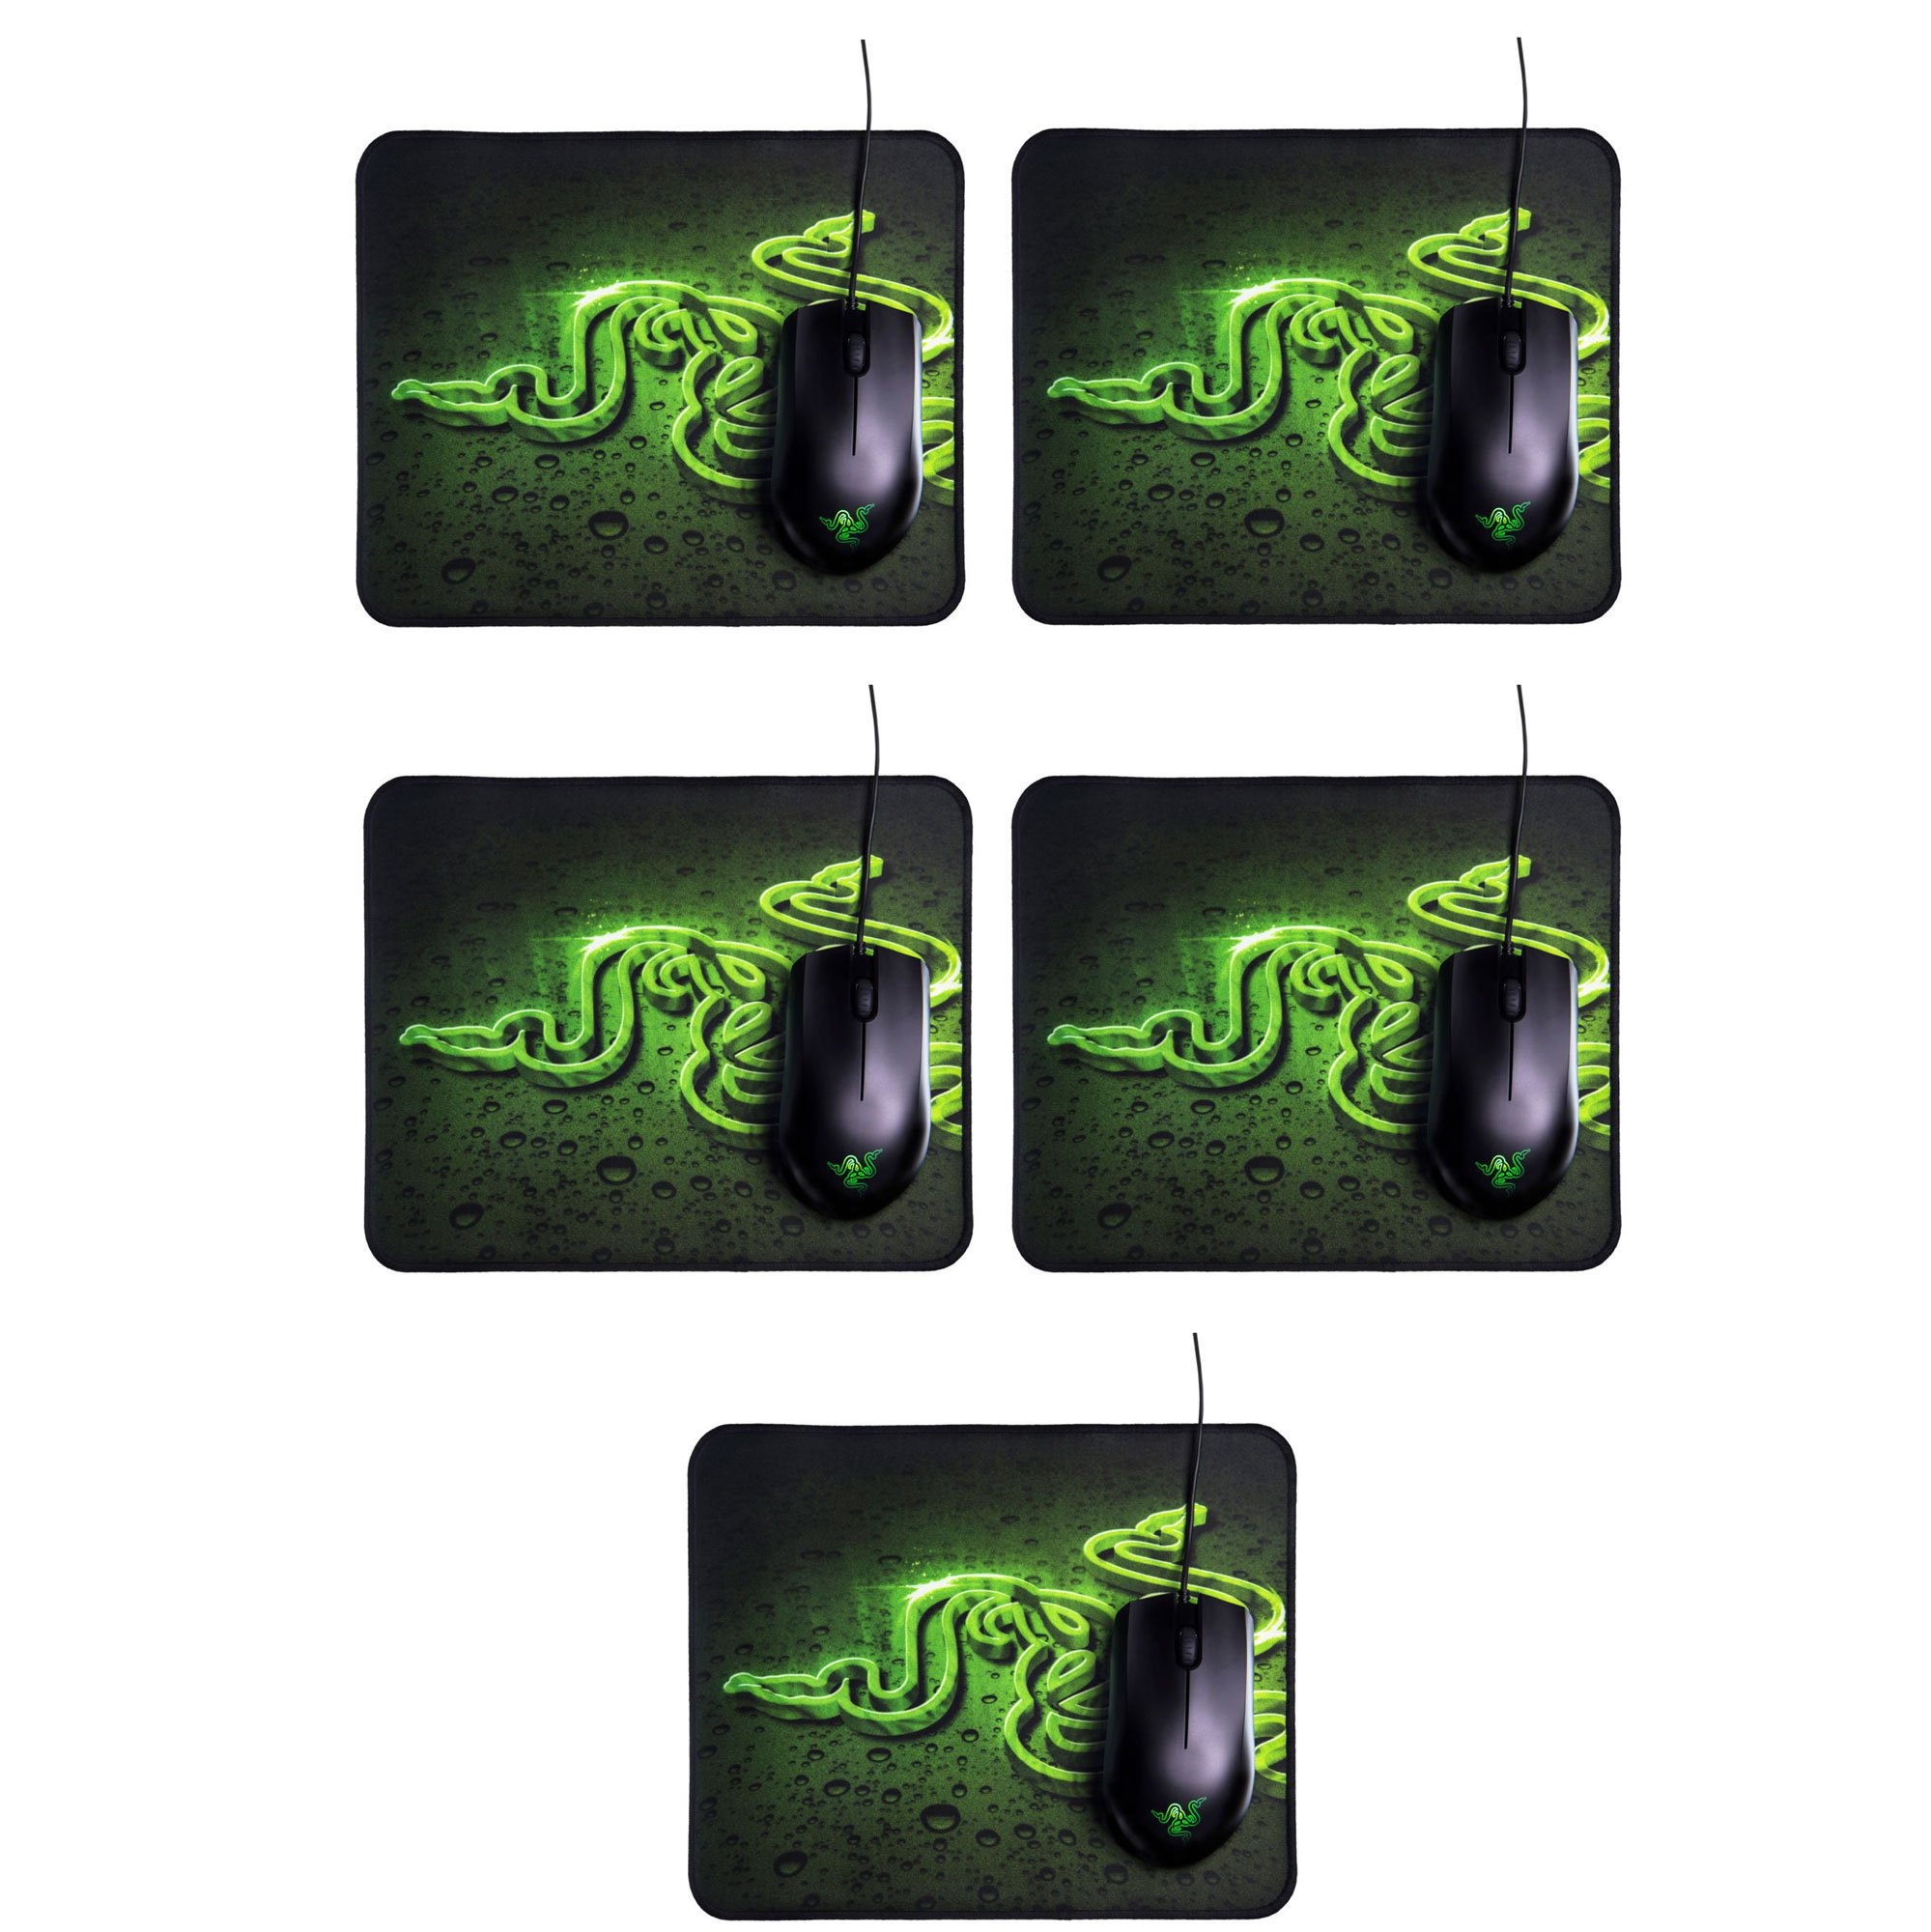 Razer Abyssus 2000 DPI Wired Mouse and Goliathus High Texture Mouse Pad (5 Pack)